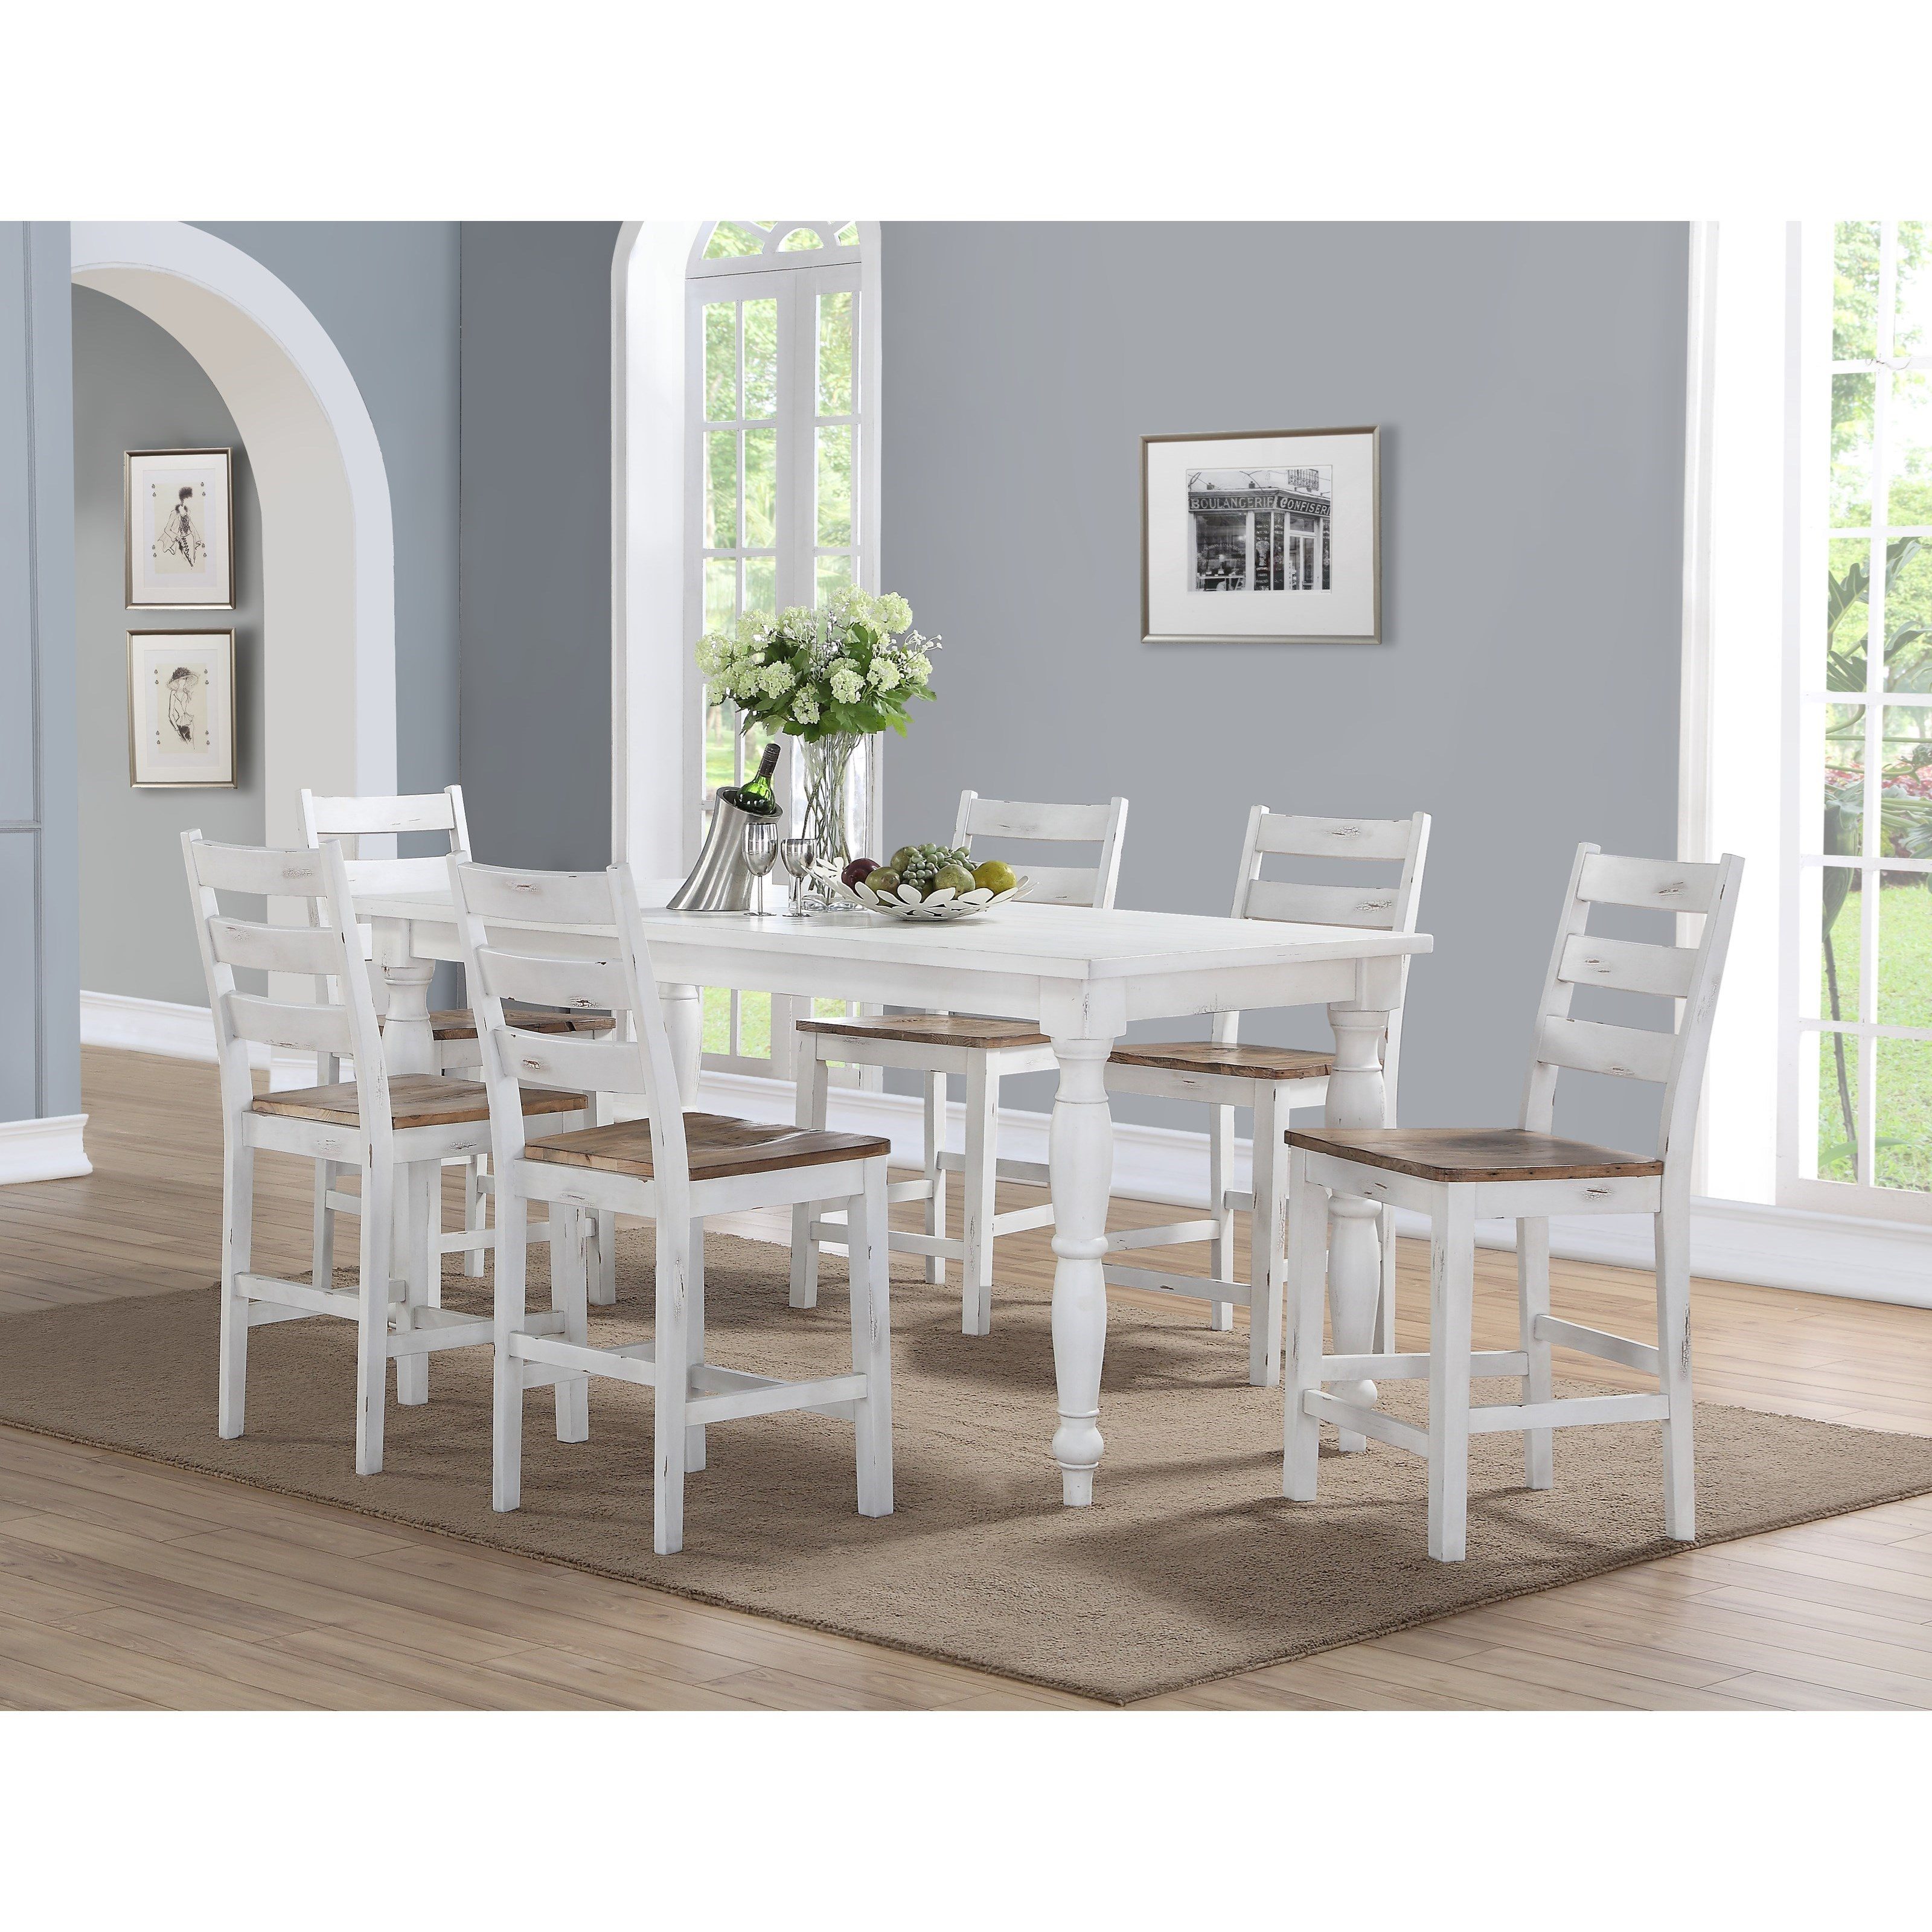 Gathering Table and Barstool Set